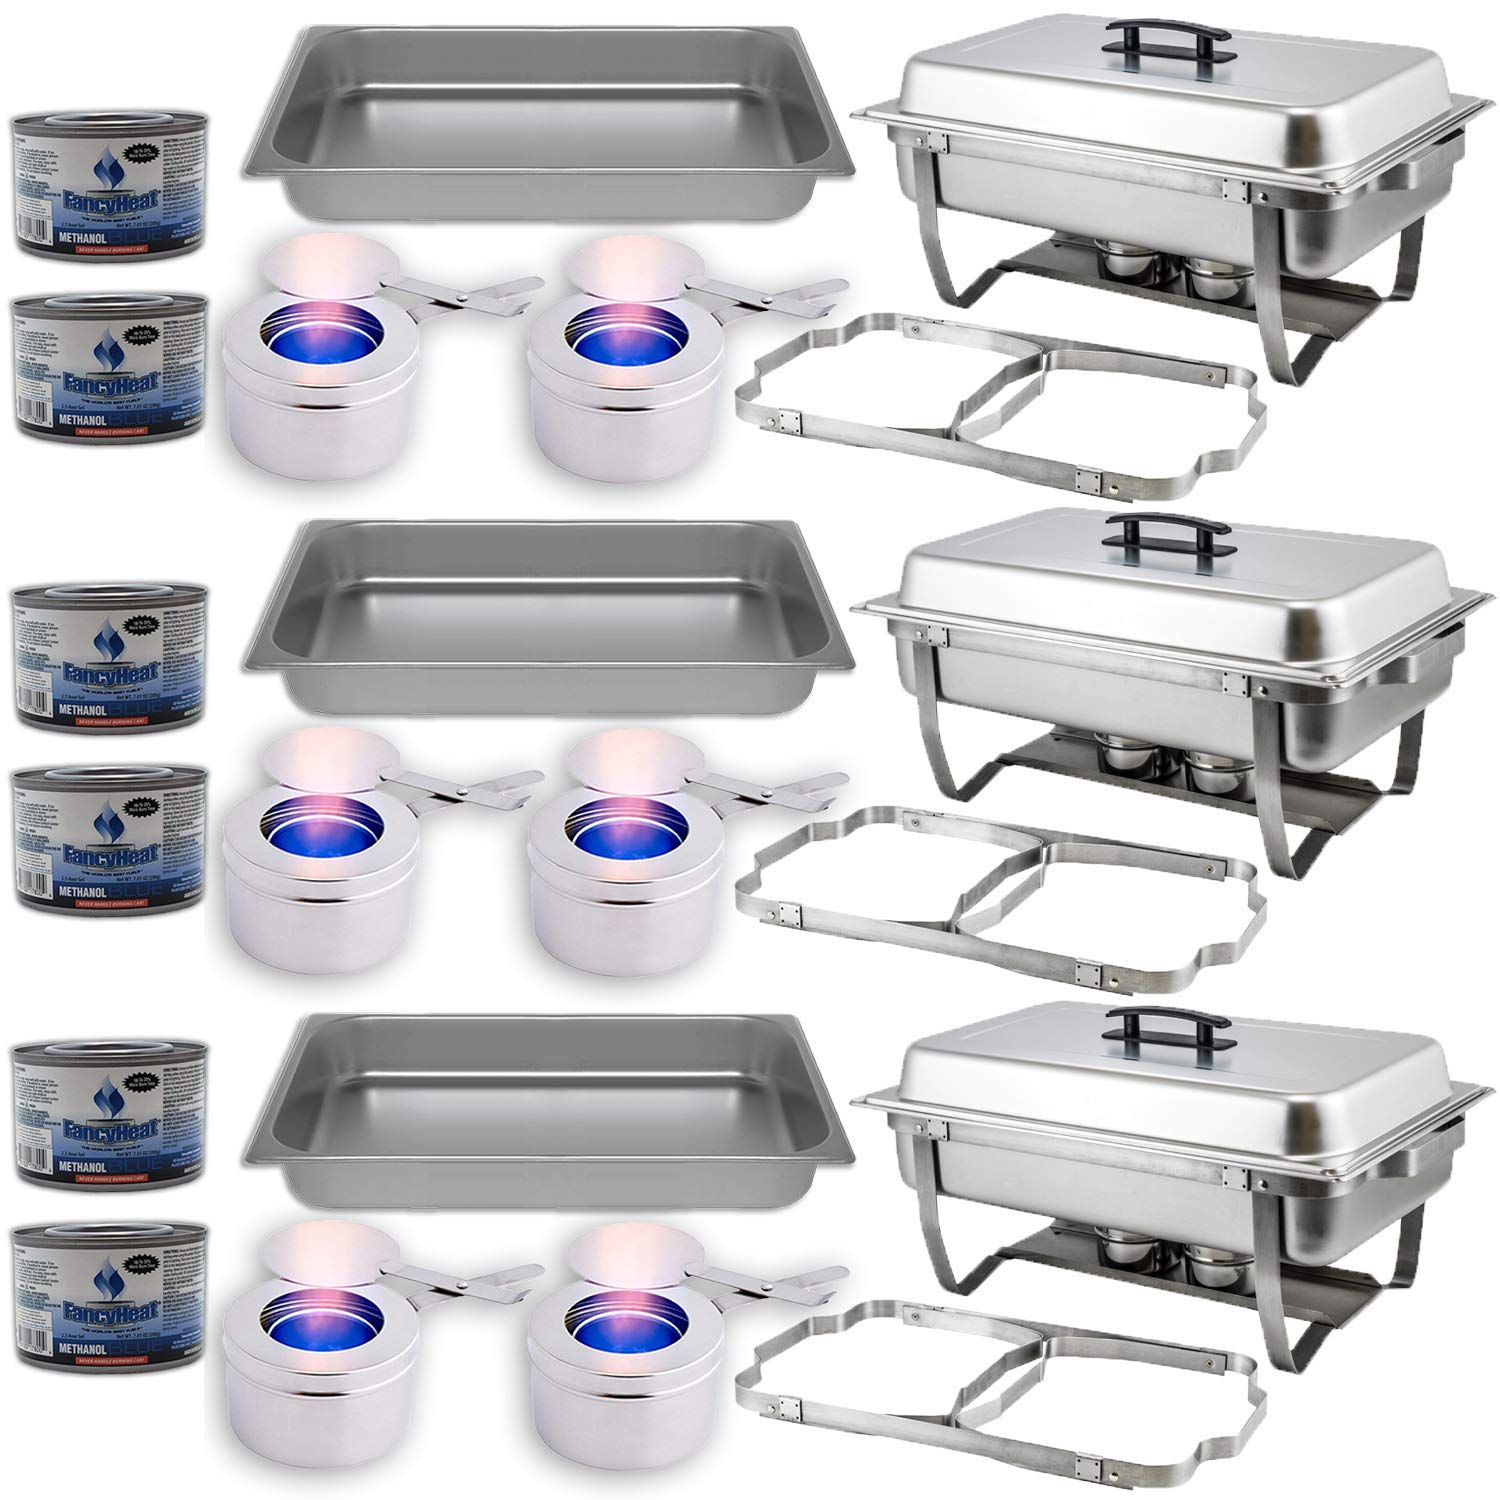 Chafing Dish Buffet Set w/Fuel - Folding Frame + Water Pan + Food Pan (8 qt) + 6 Fuel Holders + 6 Fuel Cans - 3 Full Warmer Kit, Stainless Steel Construction